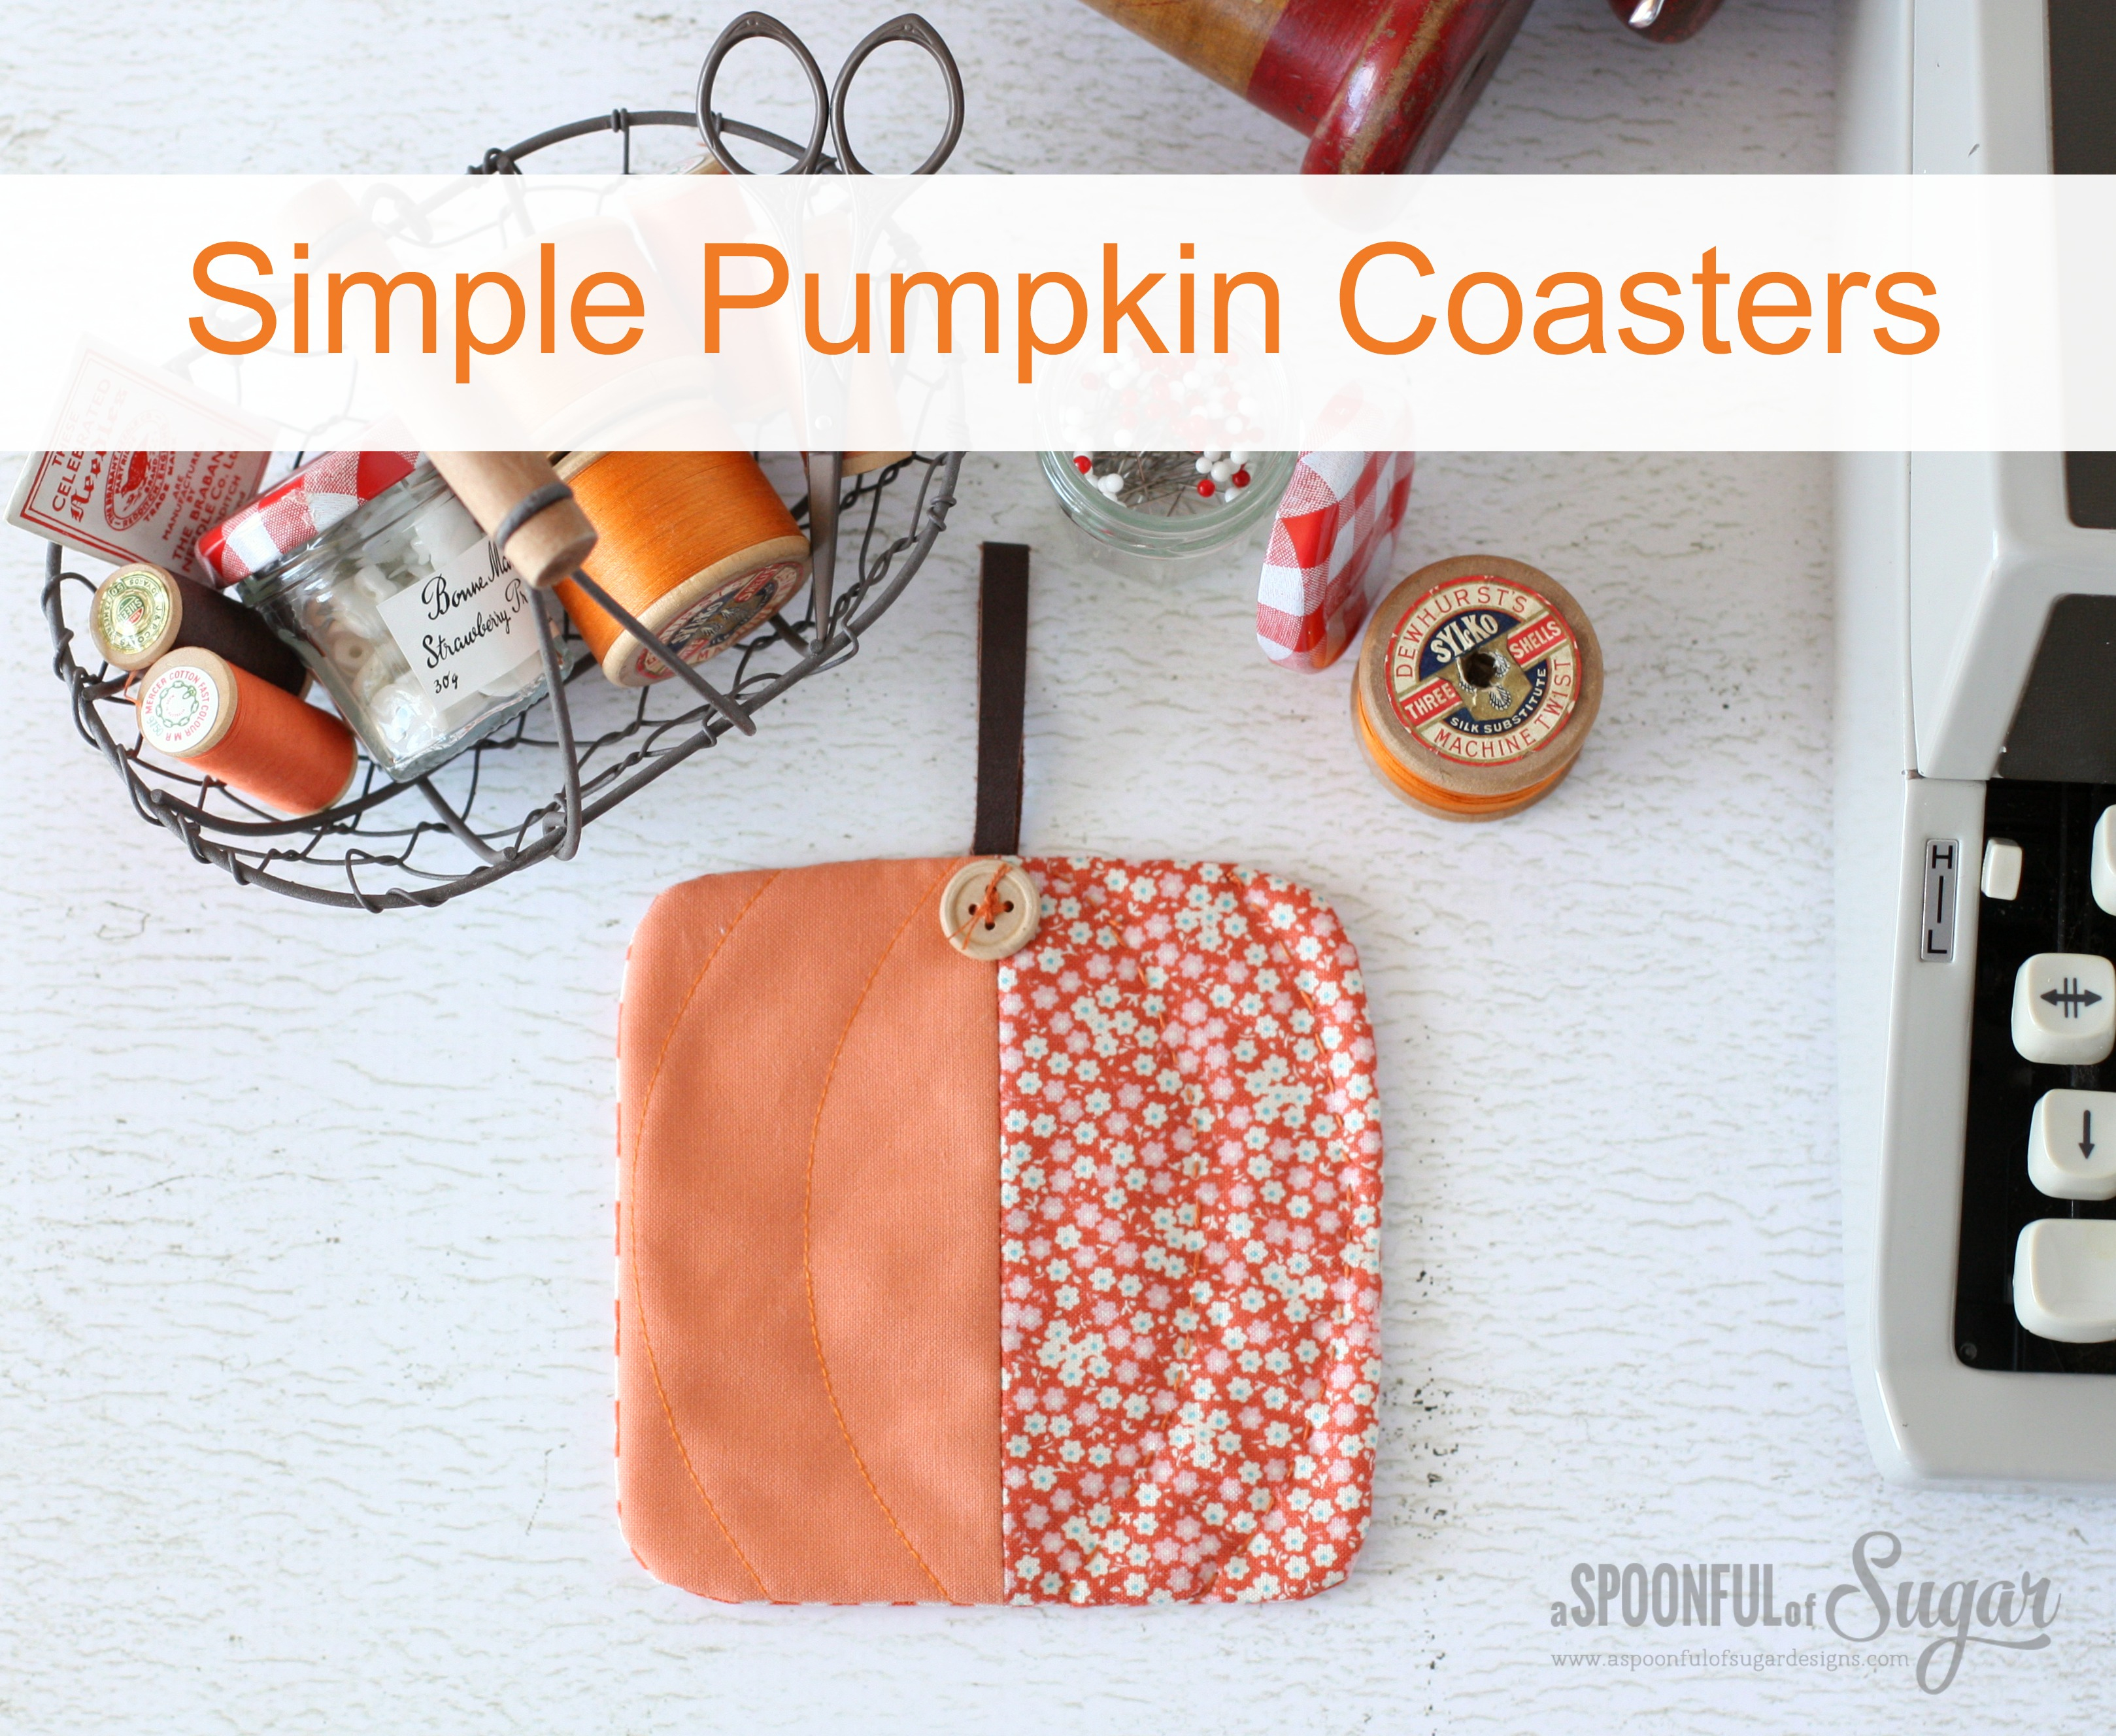 Simple Pumpkin Coasters to sew - beginner sewing tutorial by A Spoonful of Sugar